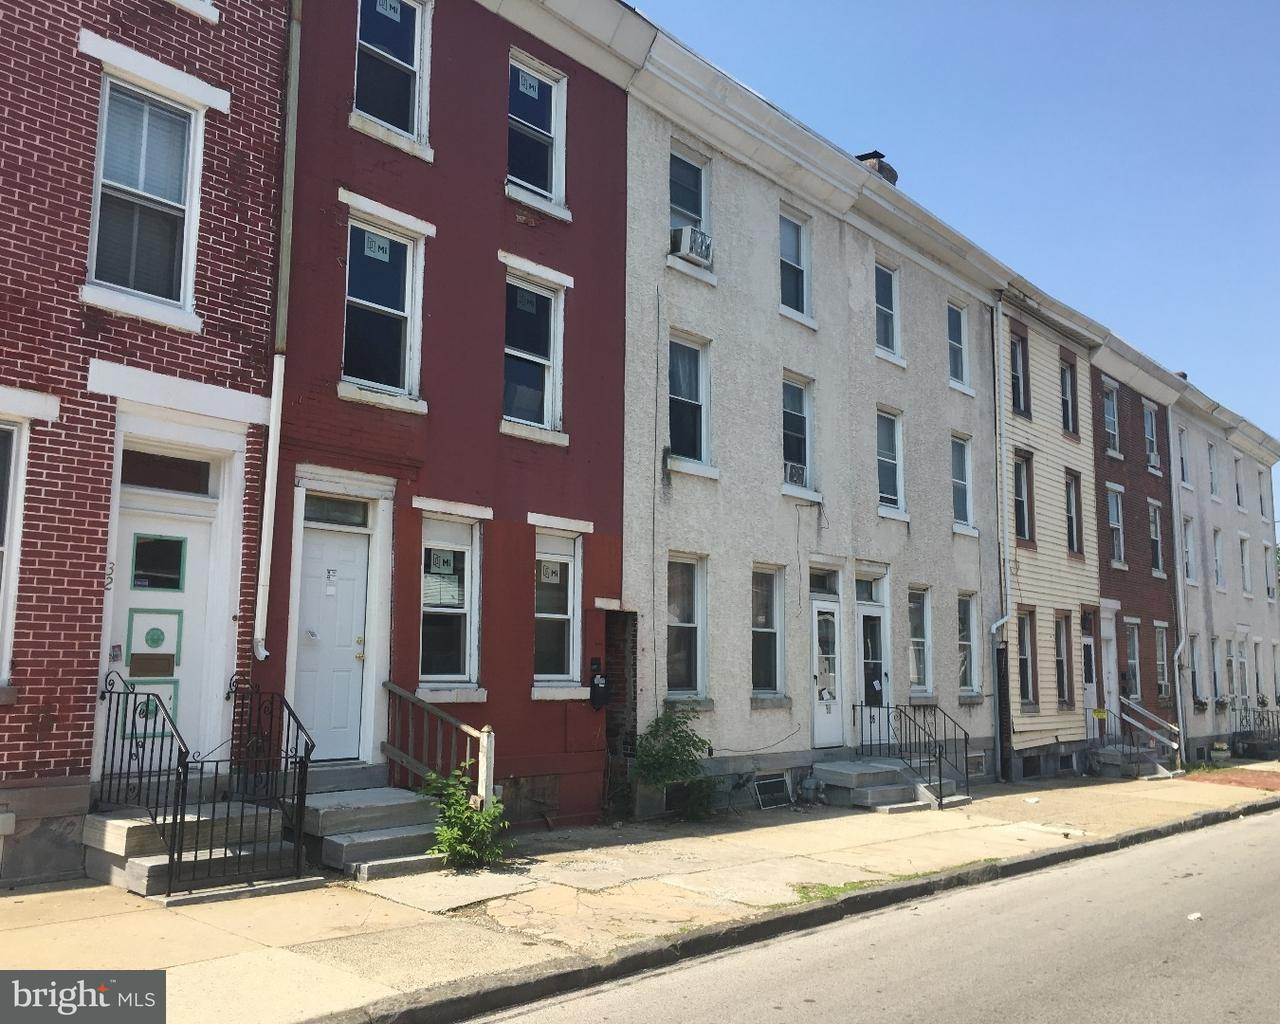 42 E ELM ST, NORRISTOWN - Listed at $105,000, NORRISTOWN